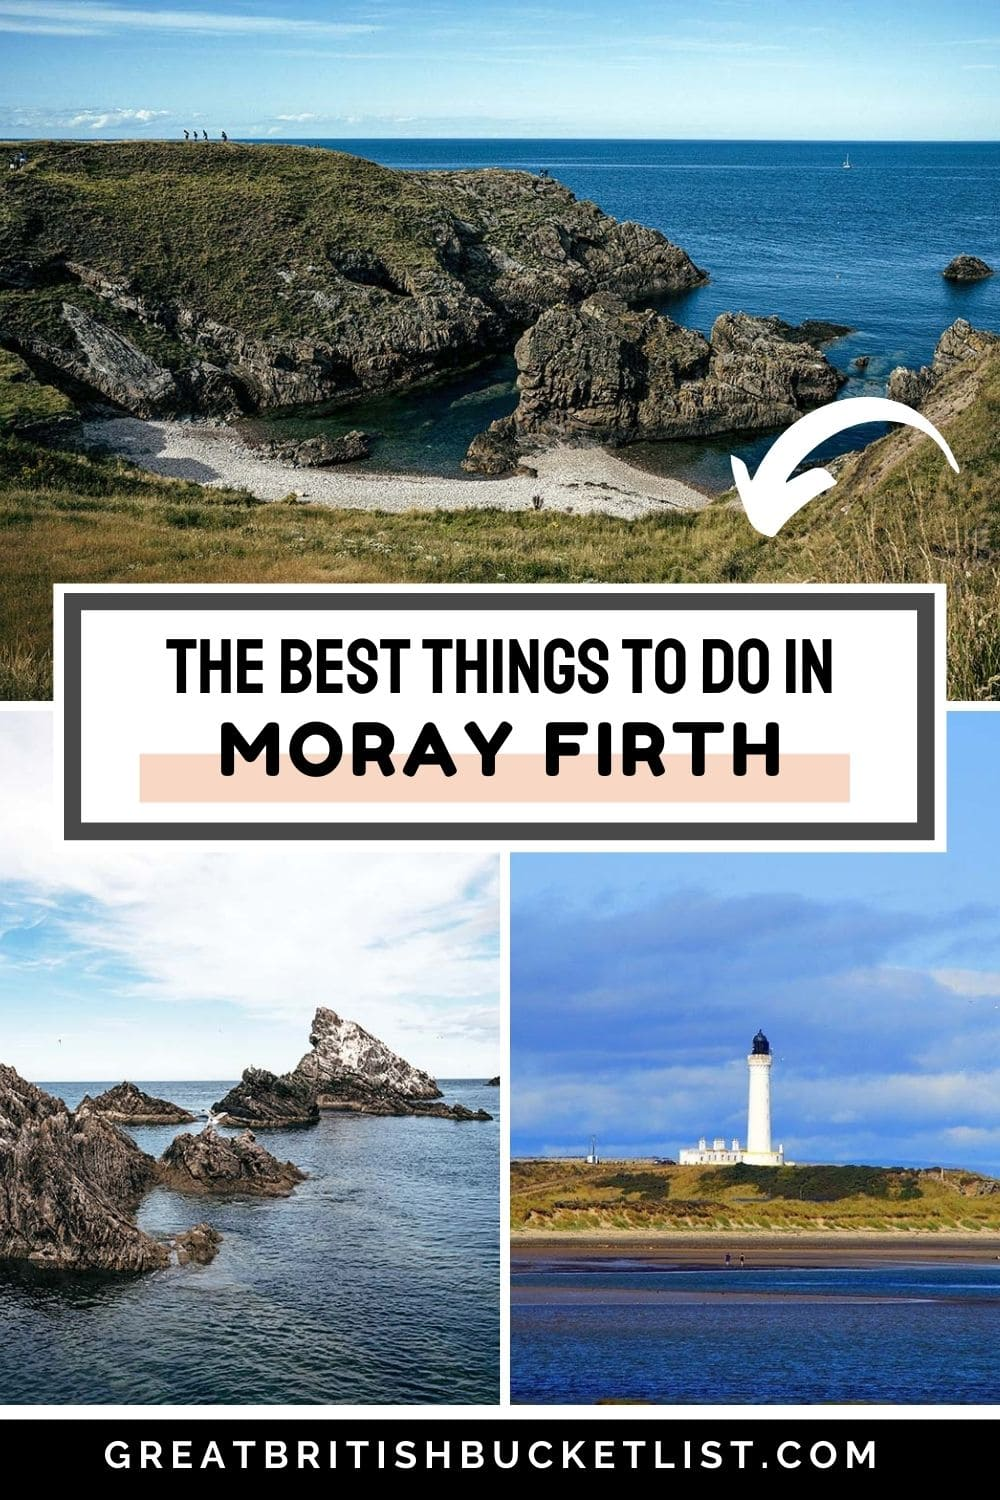 The BEST Things To Do In Moray Firth, Scotland